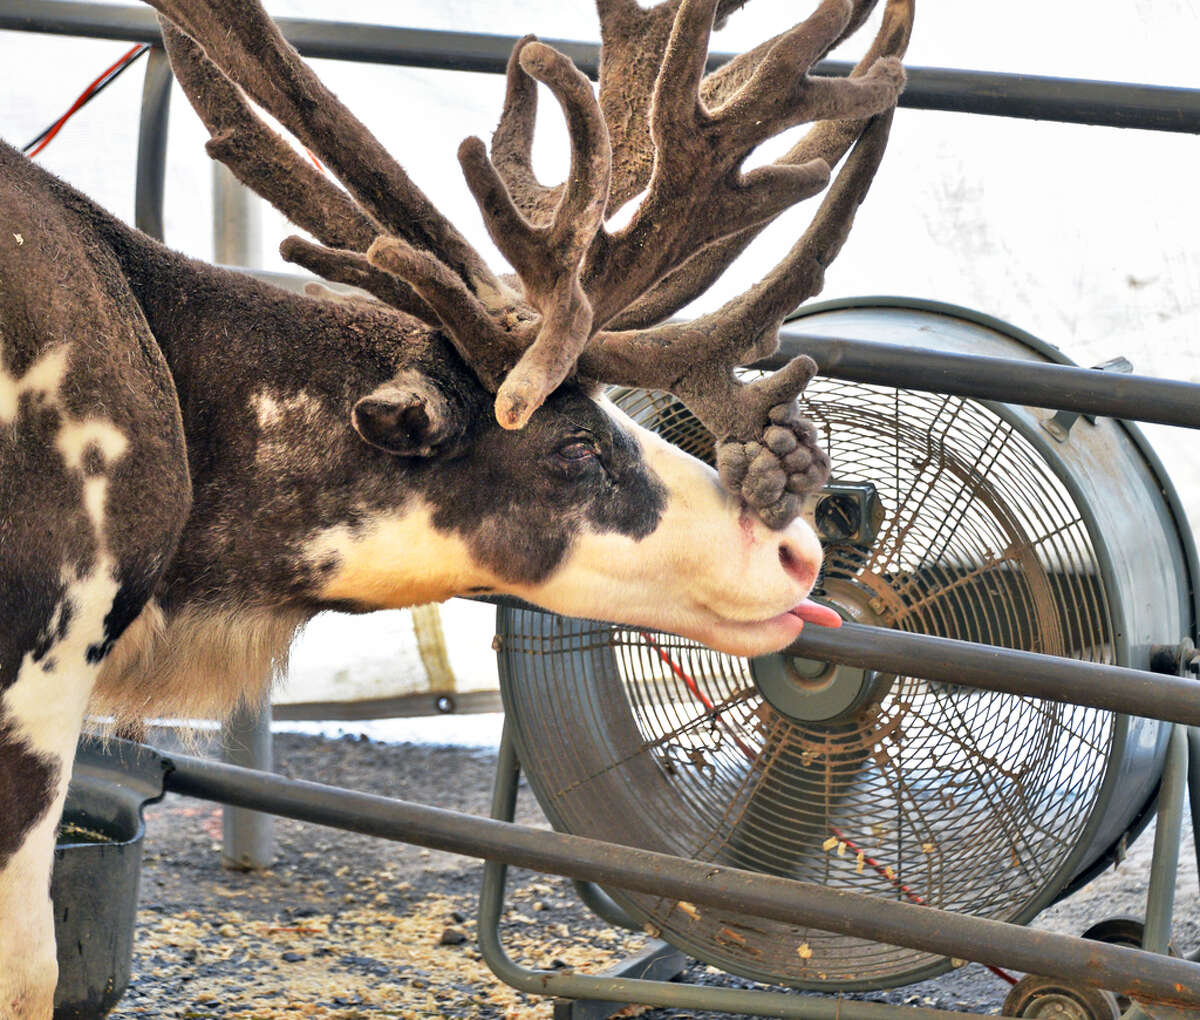 Click through the slideshow of photos from 2019 county fairs in the Capital Region. A reindeer keeps cool at a large fan at the Saratoga County Fair in Ballston Spa, NY Tuesday July 16, 2013. .(John Carl D'Annibale / Times Union)